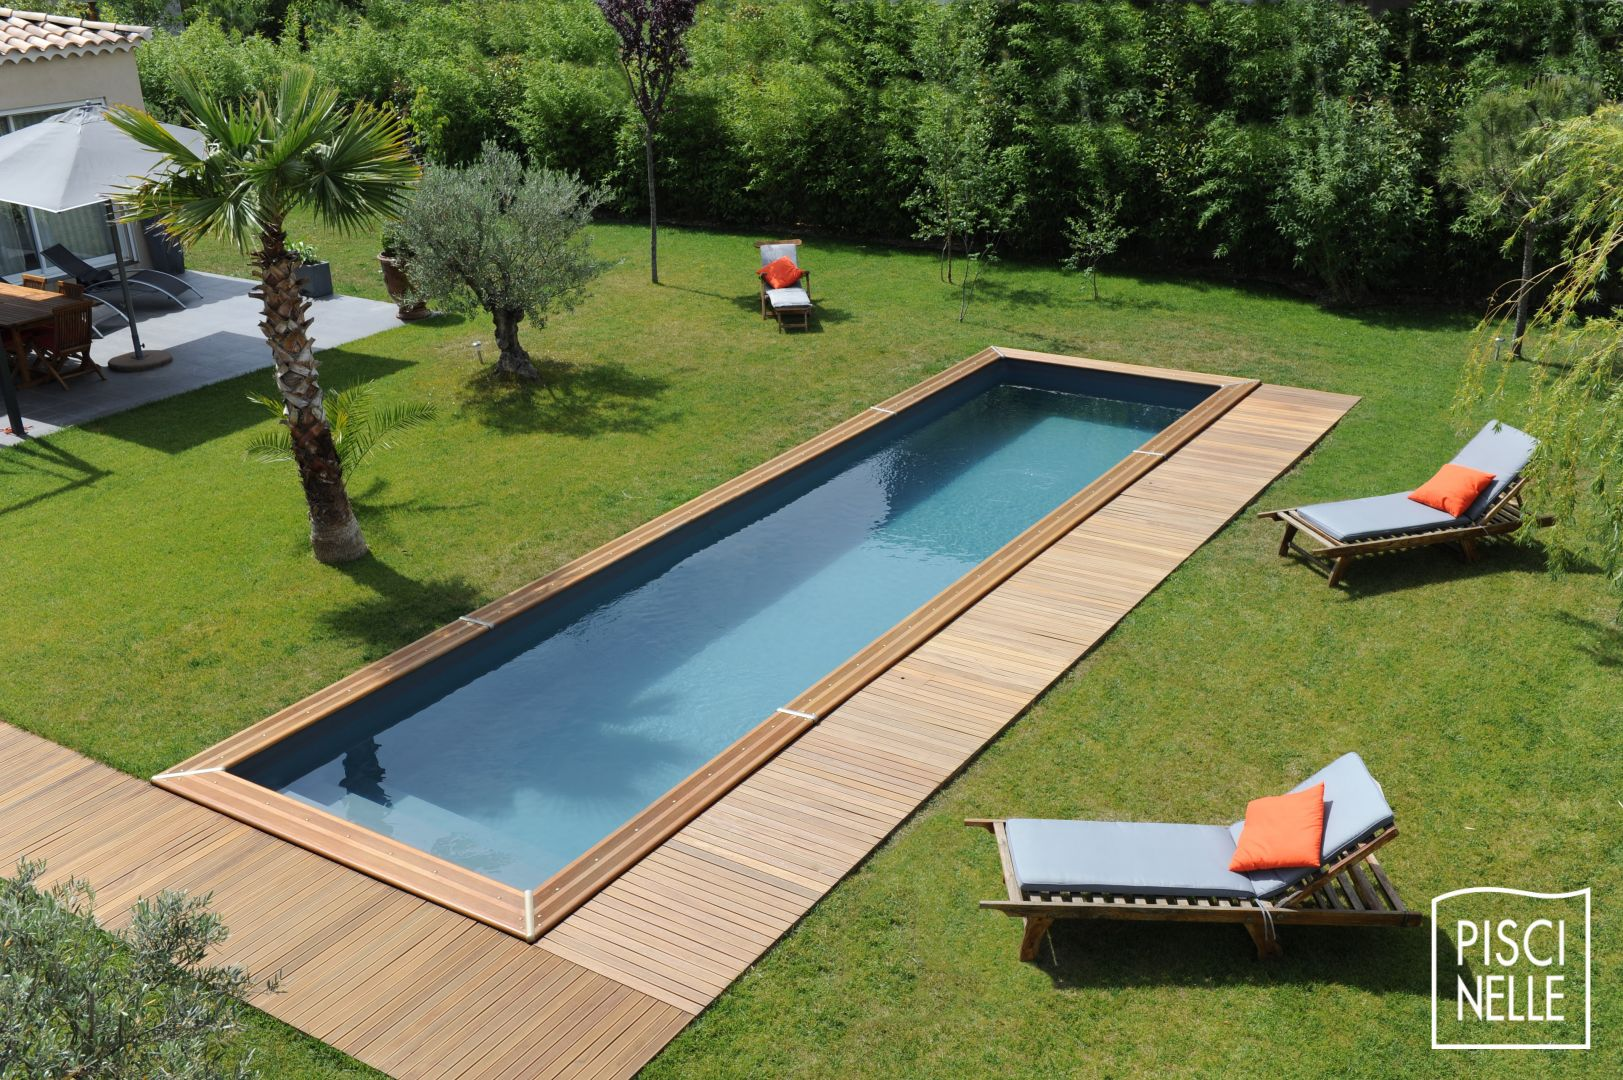 Couloir de nage piscine cn piscinelle for Dimension piscine